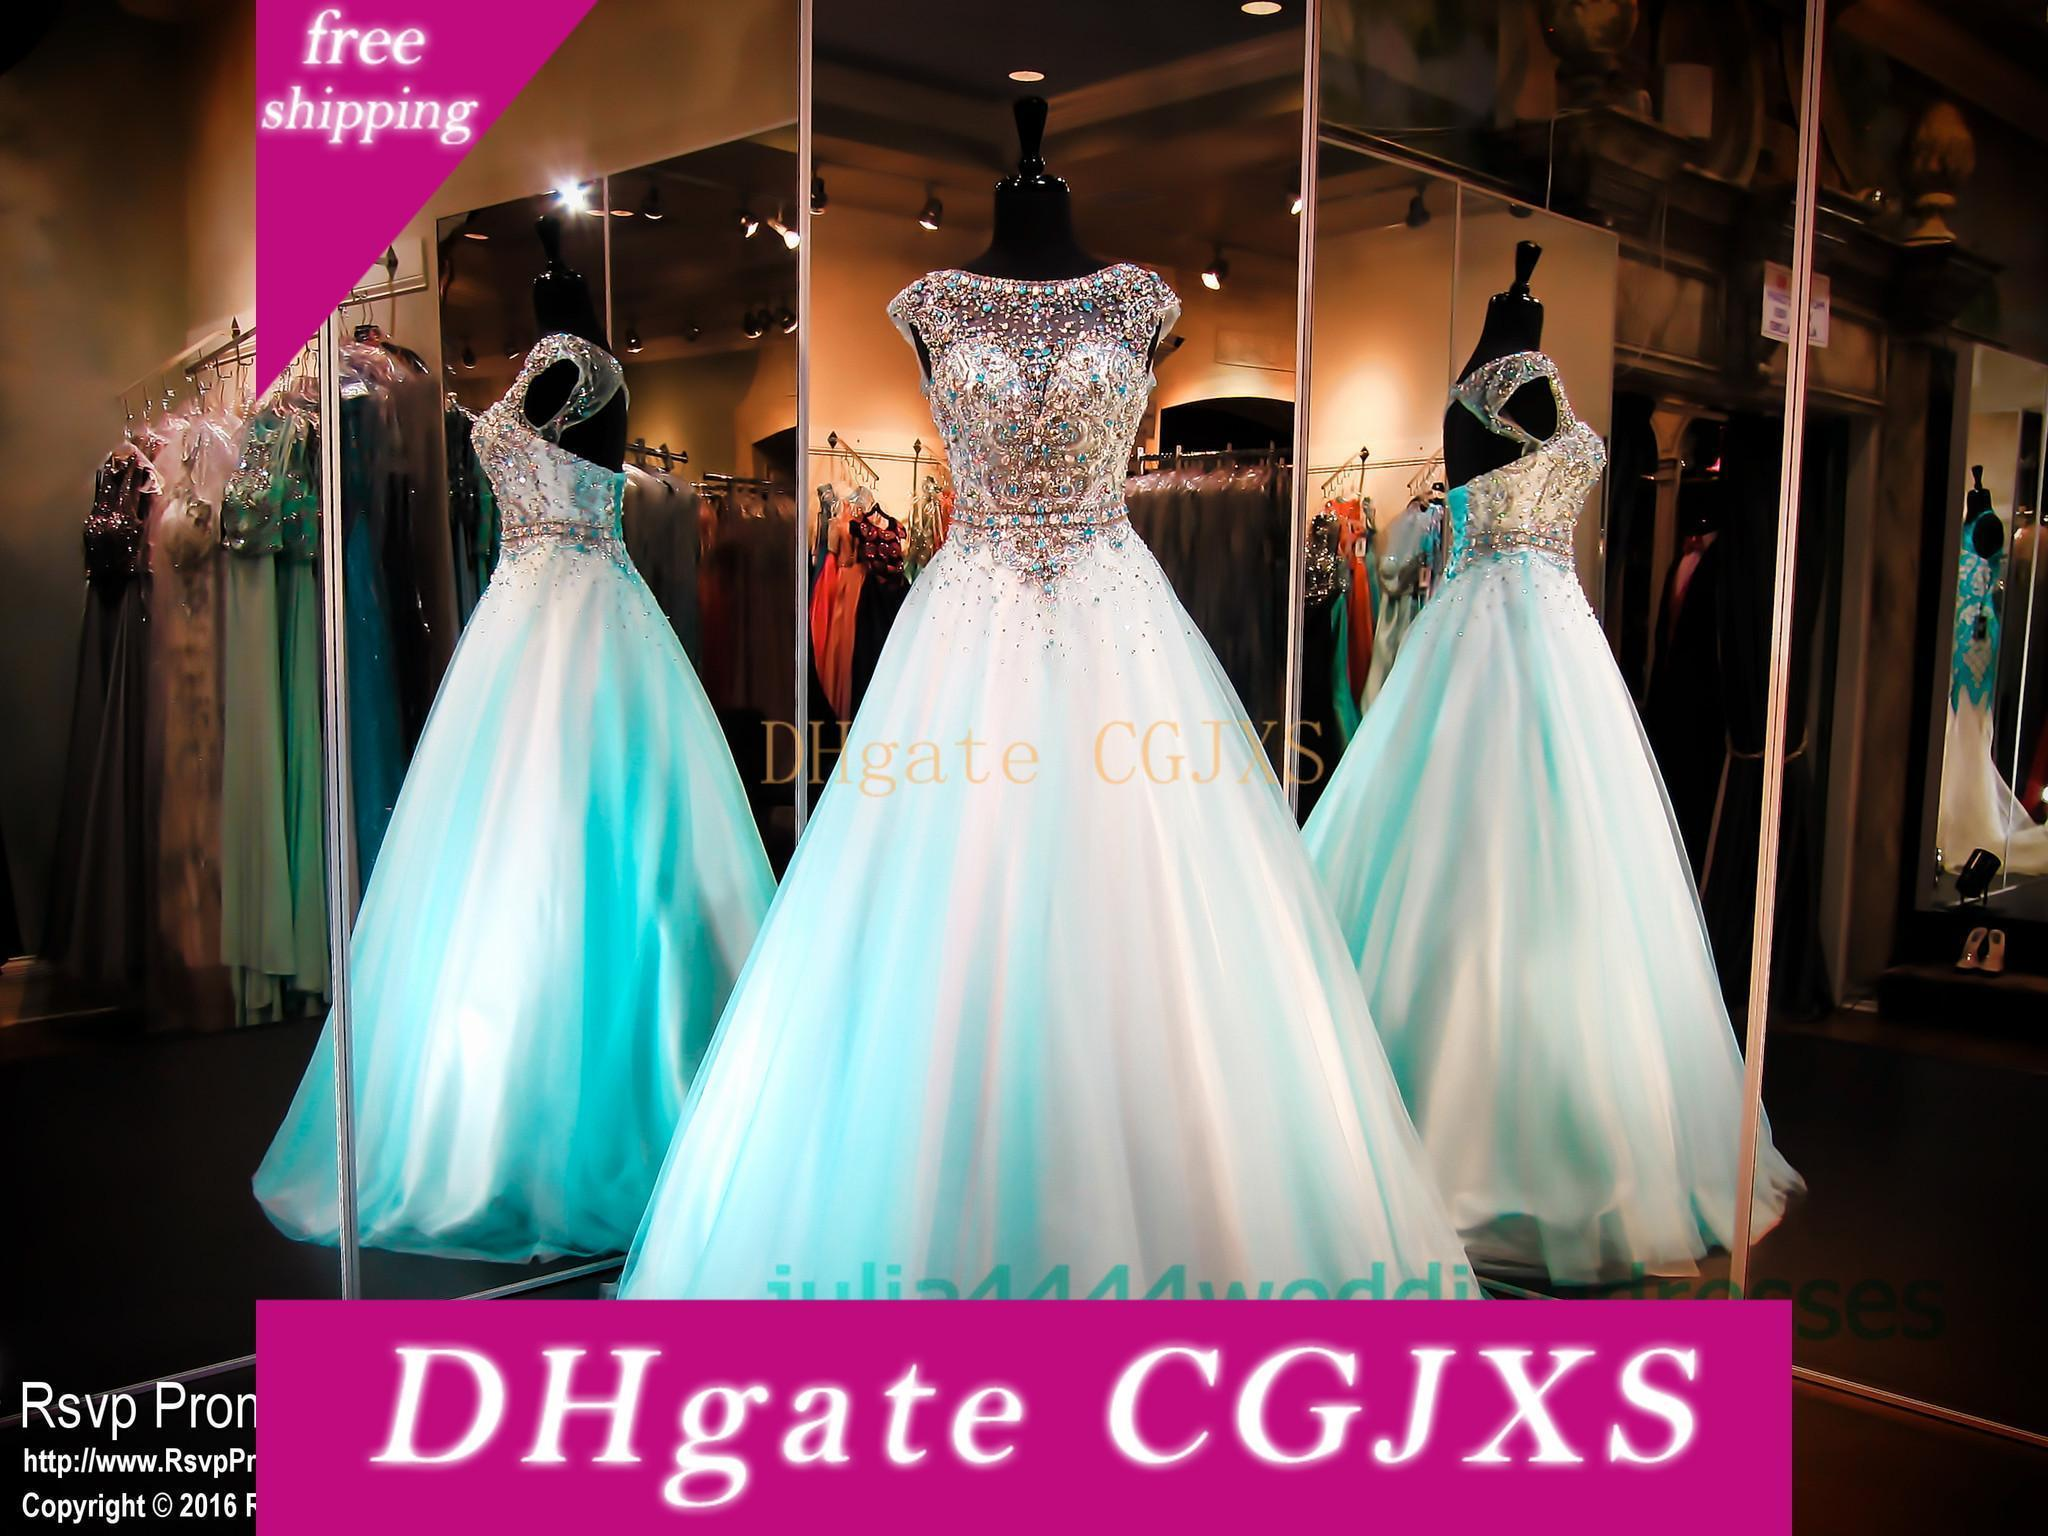 2019 Cap Neck Sheer Quinceanera Dresses Prom Party vestido Pageant completa Beads Top Mint Ulle Com Cap Sleeve Soop luva do doce 16 Longo